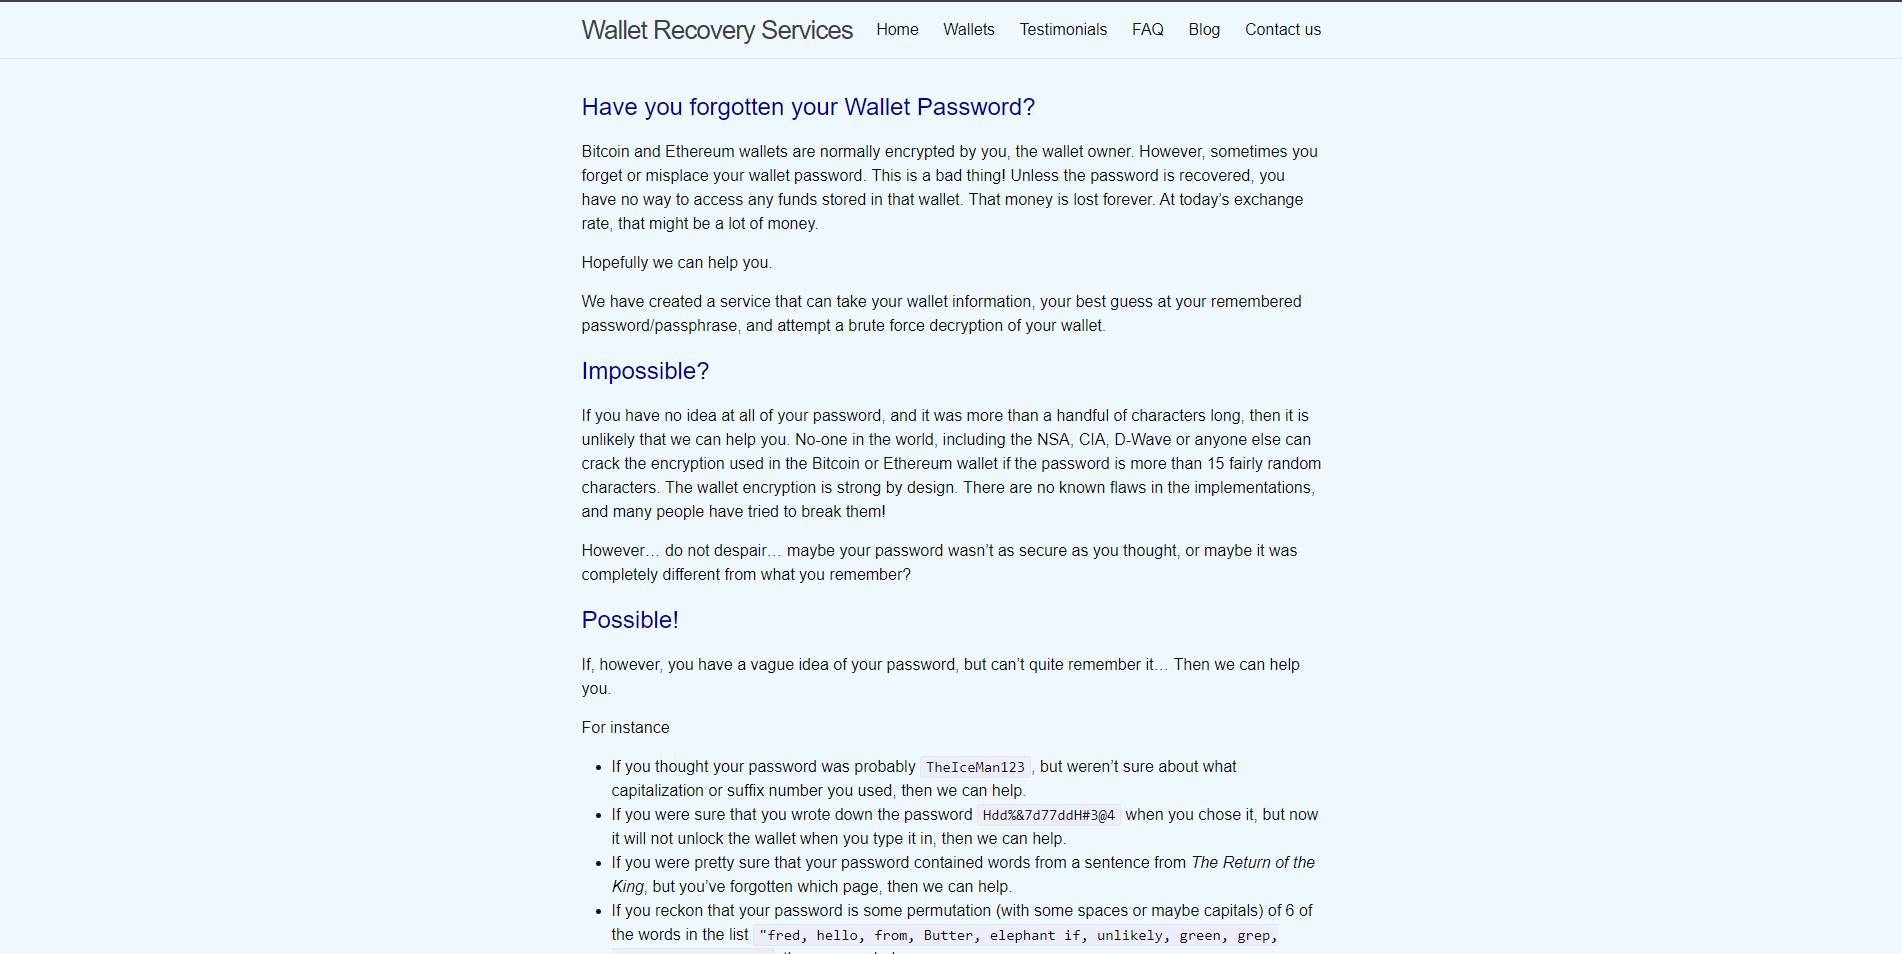 Wallet Recovery Services